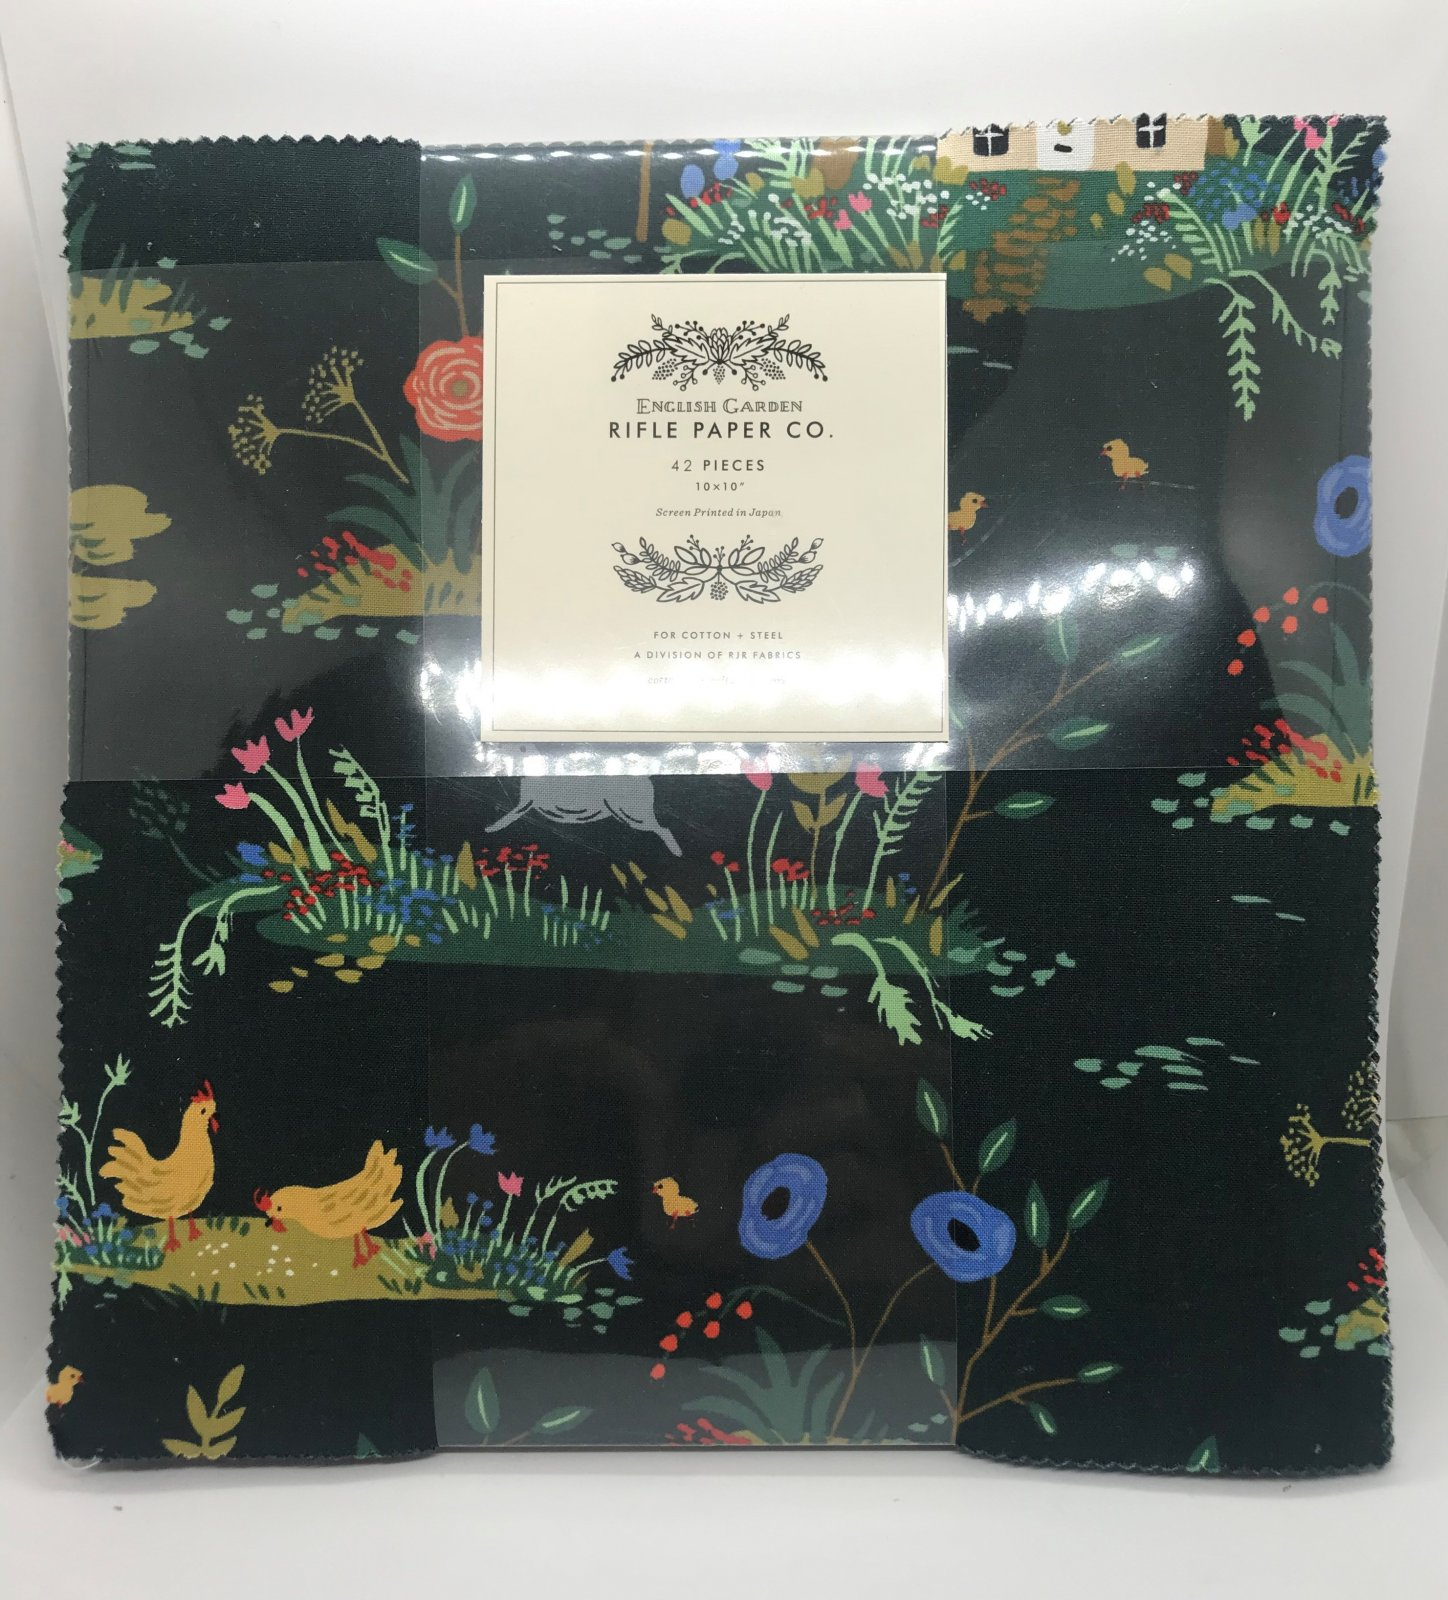 RPEG10SP Rifle Paper Co. English Garden 10 Square Pack